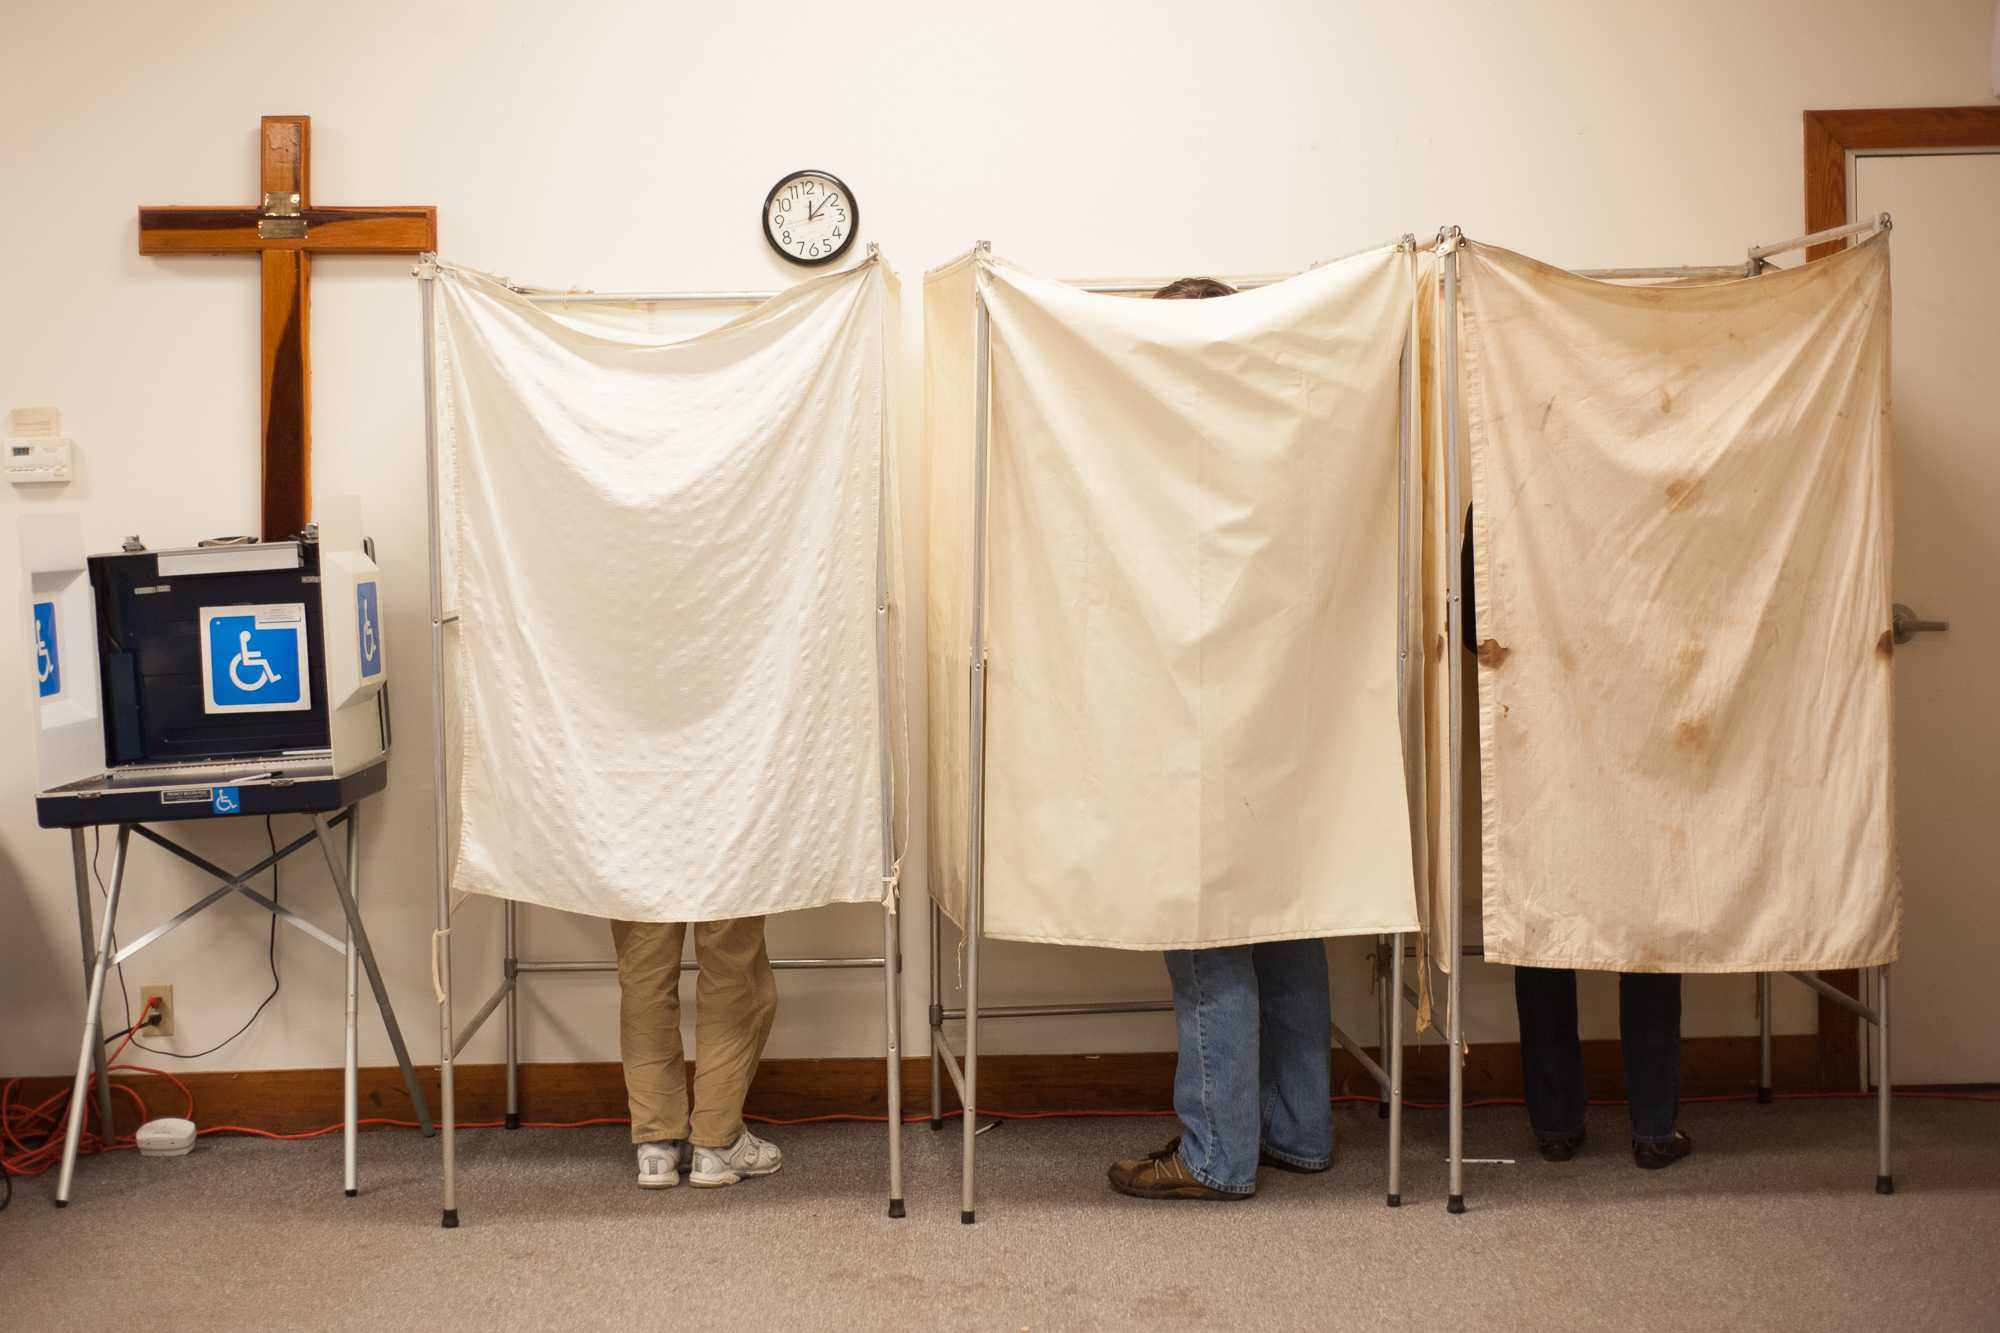 Voters stand in booths at the Salvation Army in Champaign, on election day, Tuesday, Nov. 6, 2012.